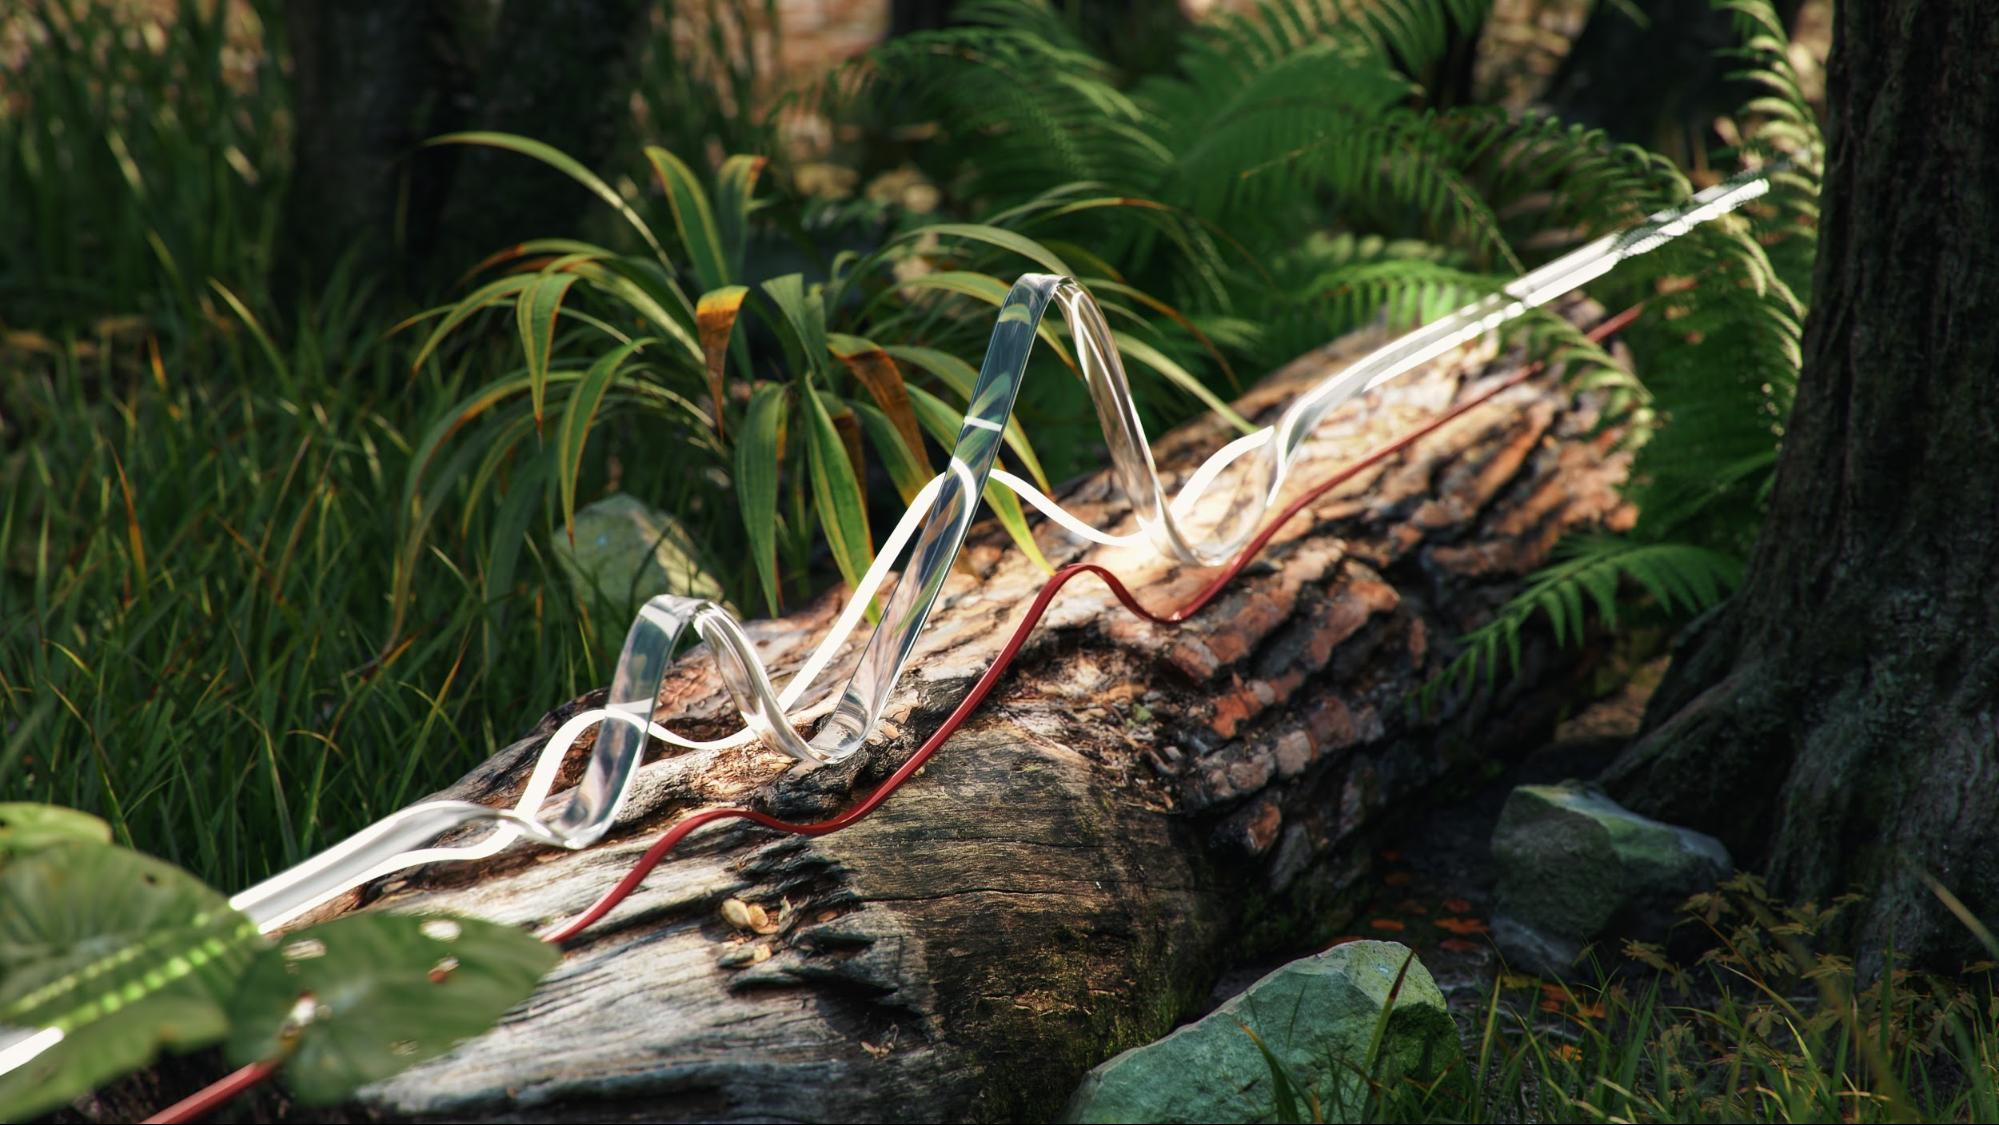 A scene of a tree stump on a forest floor, intertwined with CGI wires and ribbons illuminated with outdoor 3D lighting